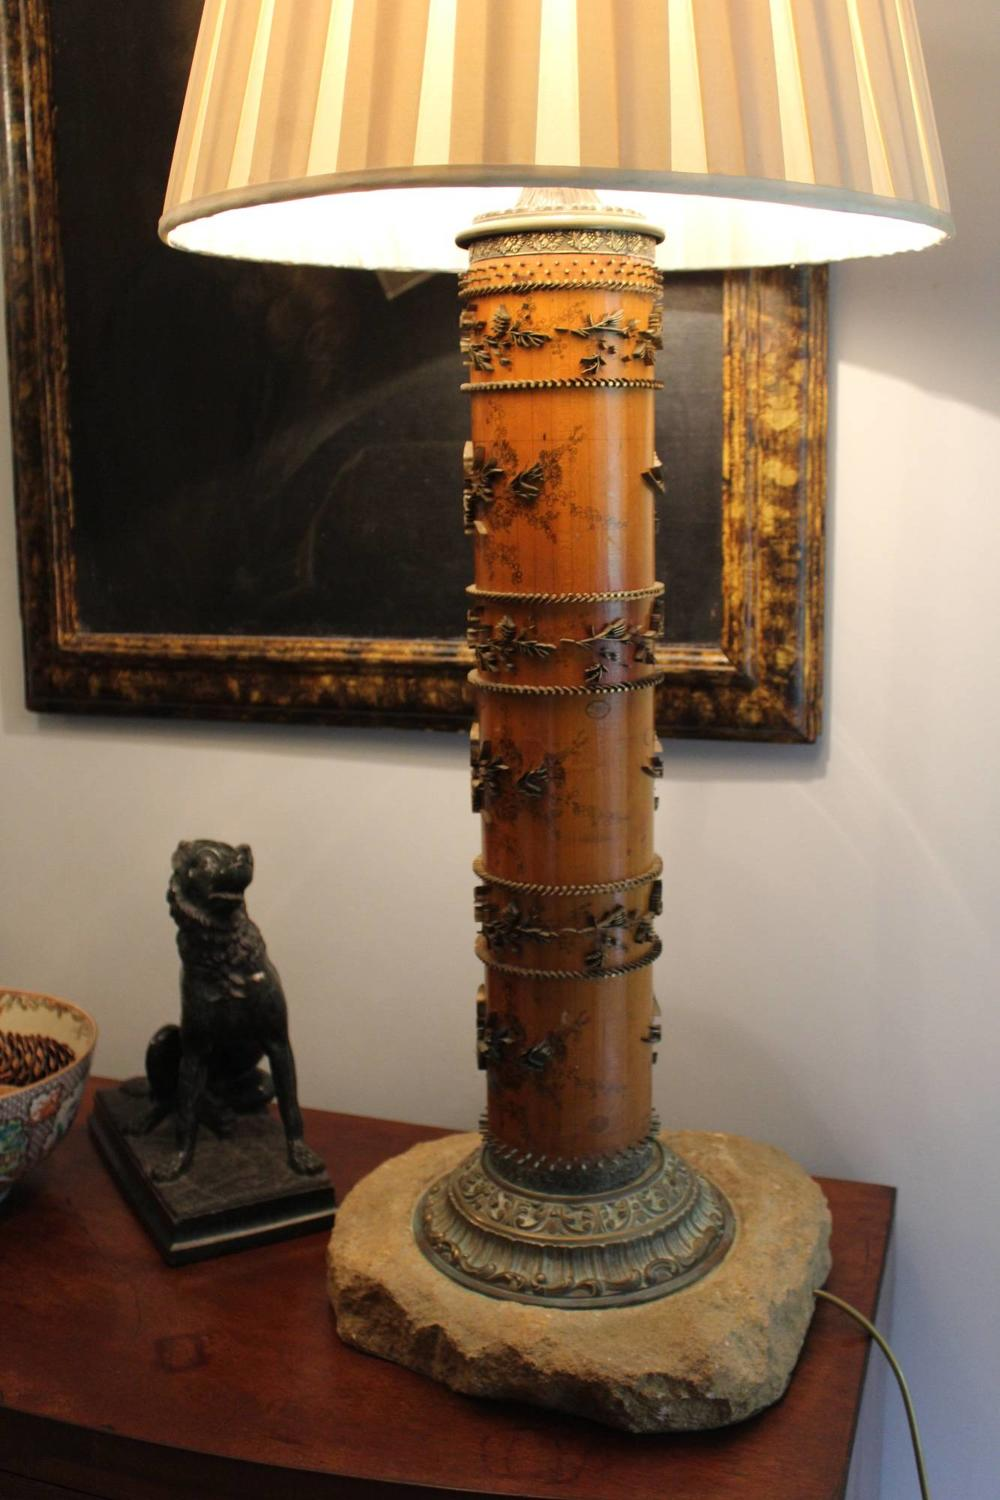 A Large Table Lamp formed from an Antique Wallpaper Printing Roller